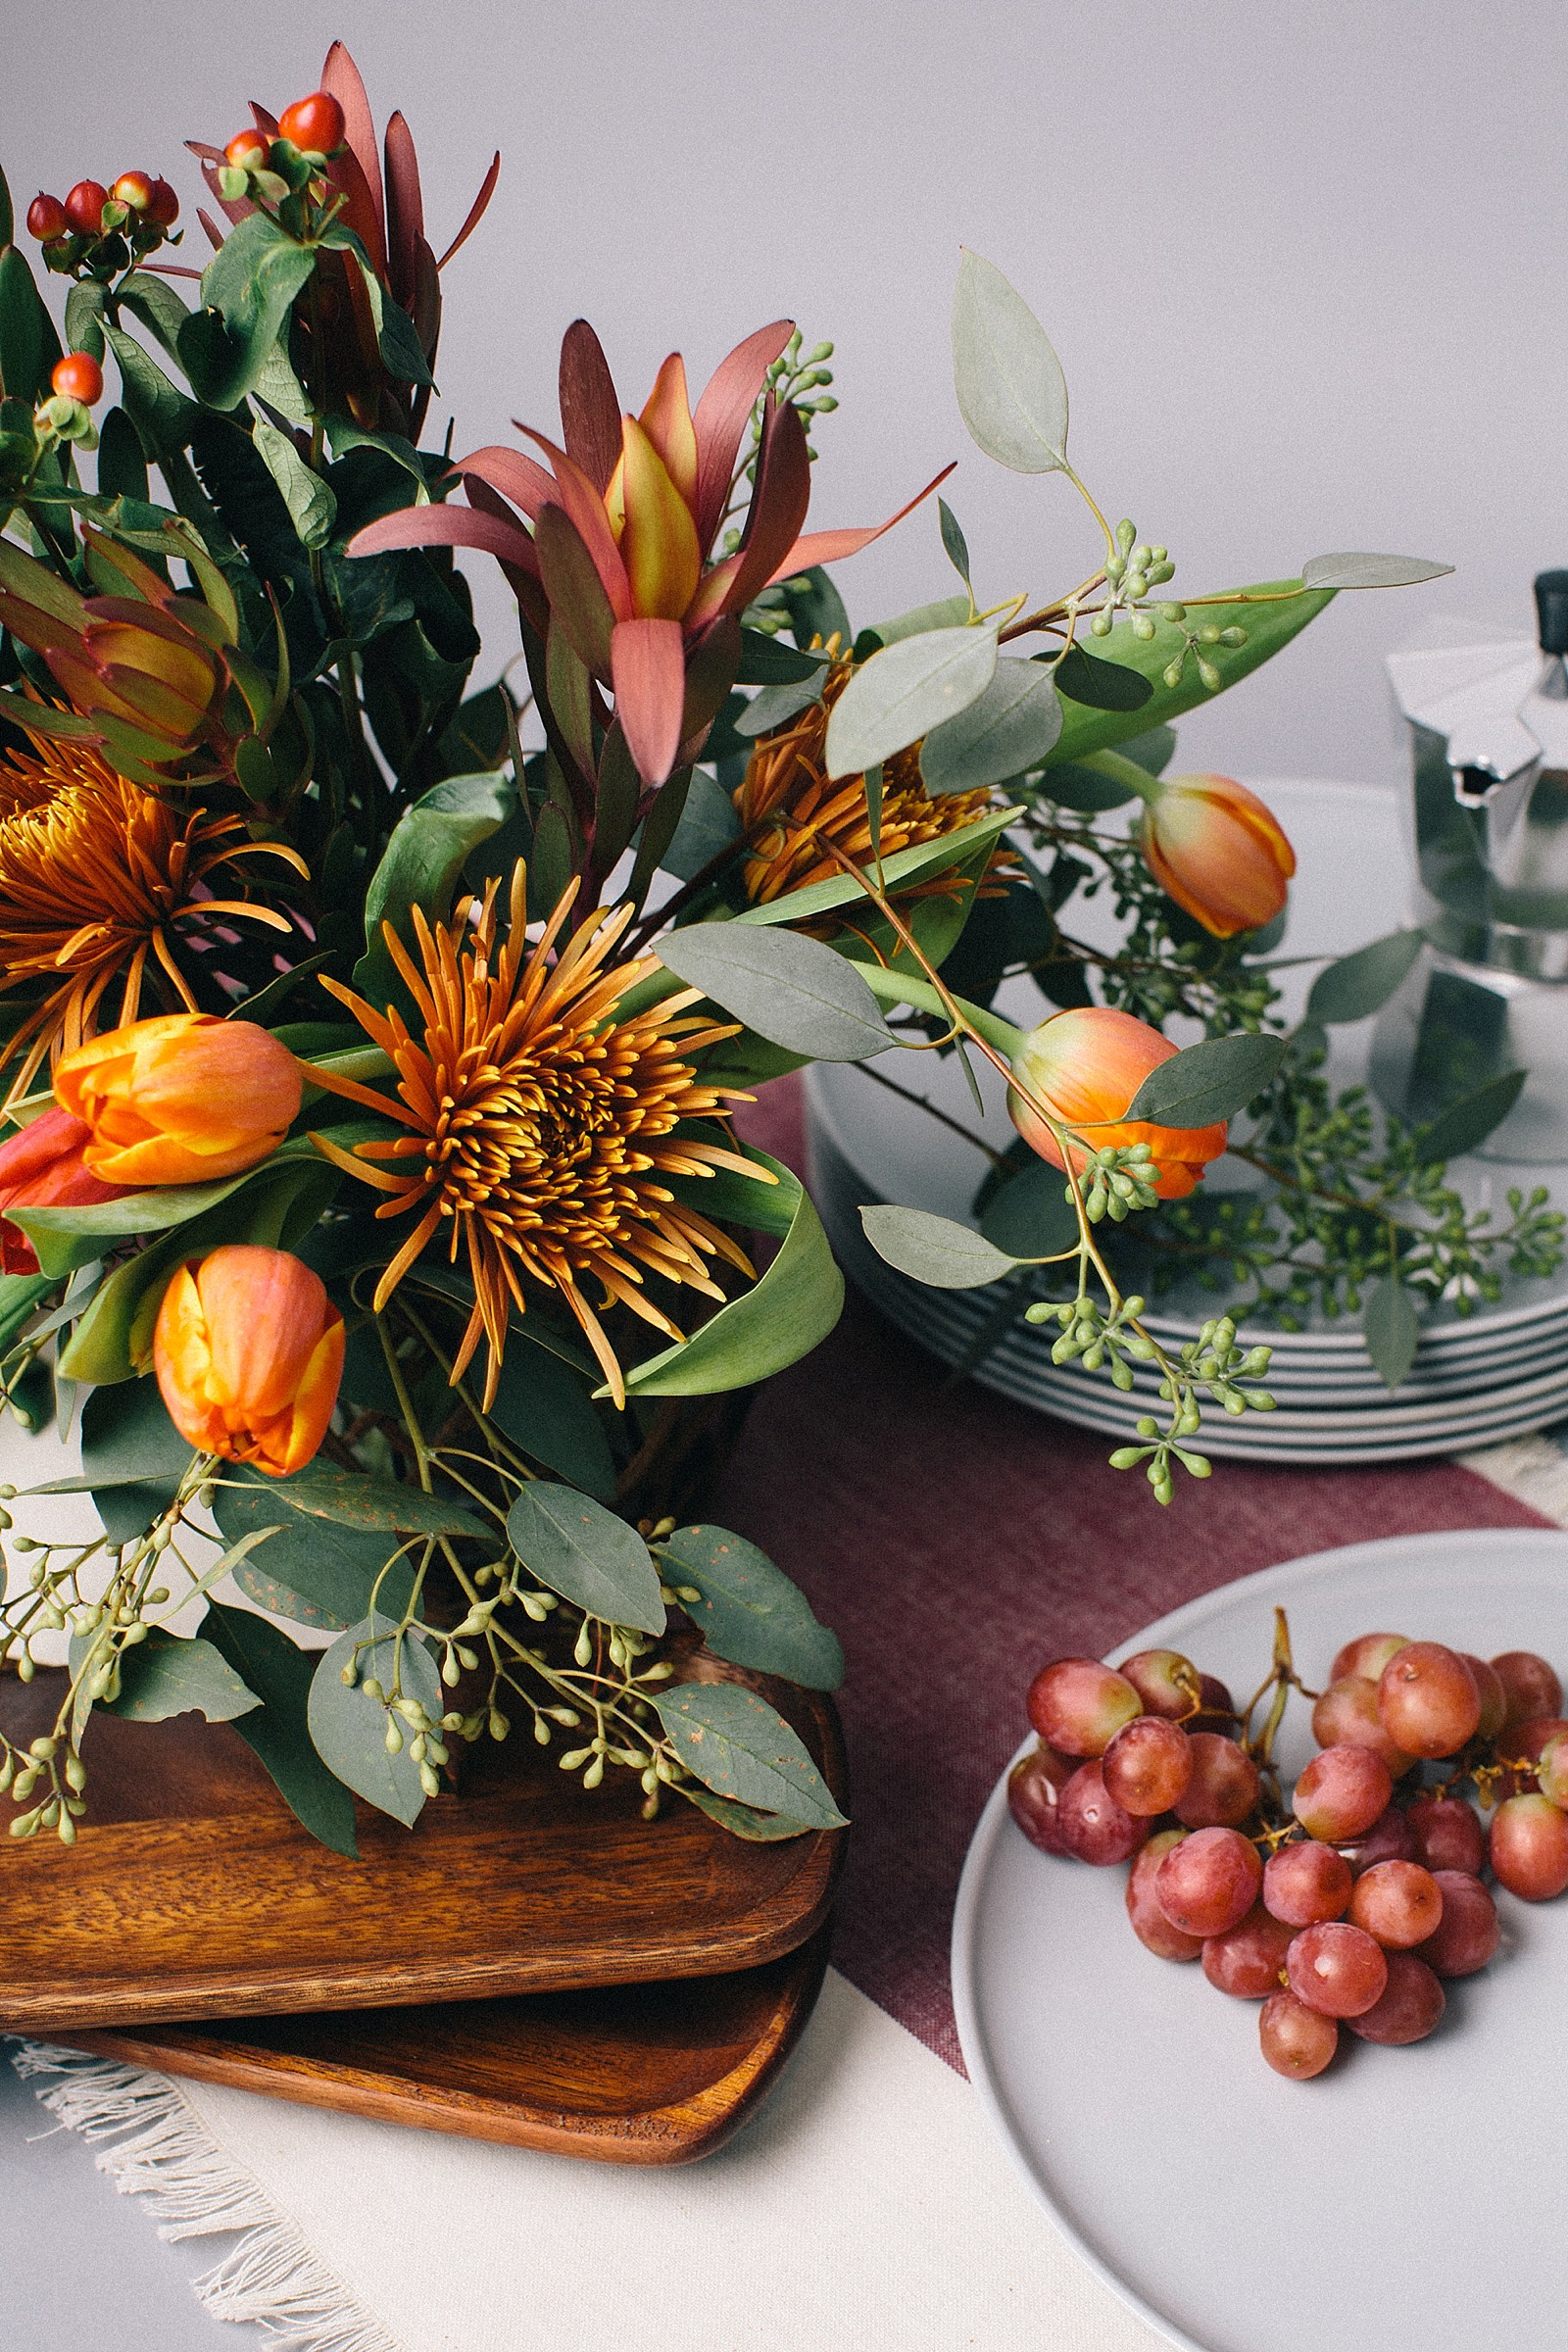 pro-flowers-burke-decor-thanksgiving-christmas-tablescape-idea-fall-popsugar-must-have-box-lifestyle-blogger-diana-elizabeth-blog-2164